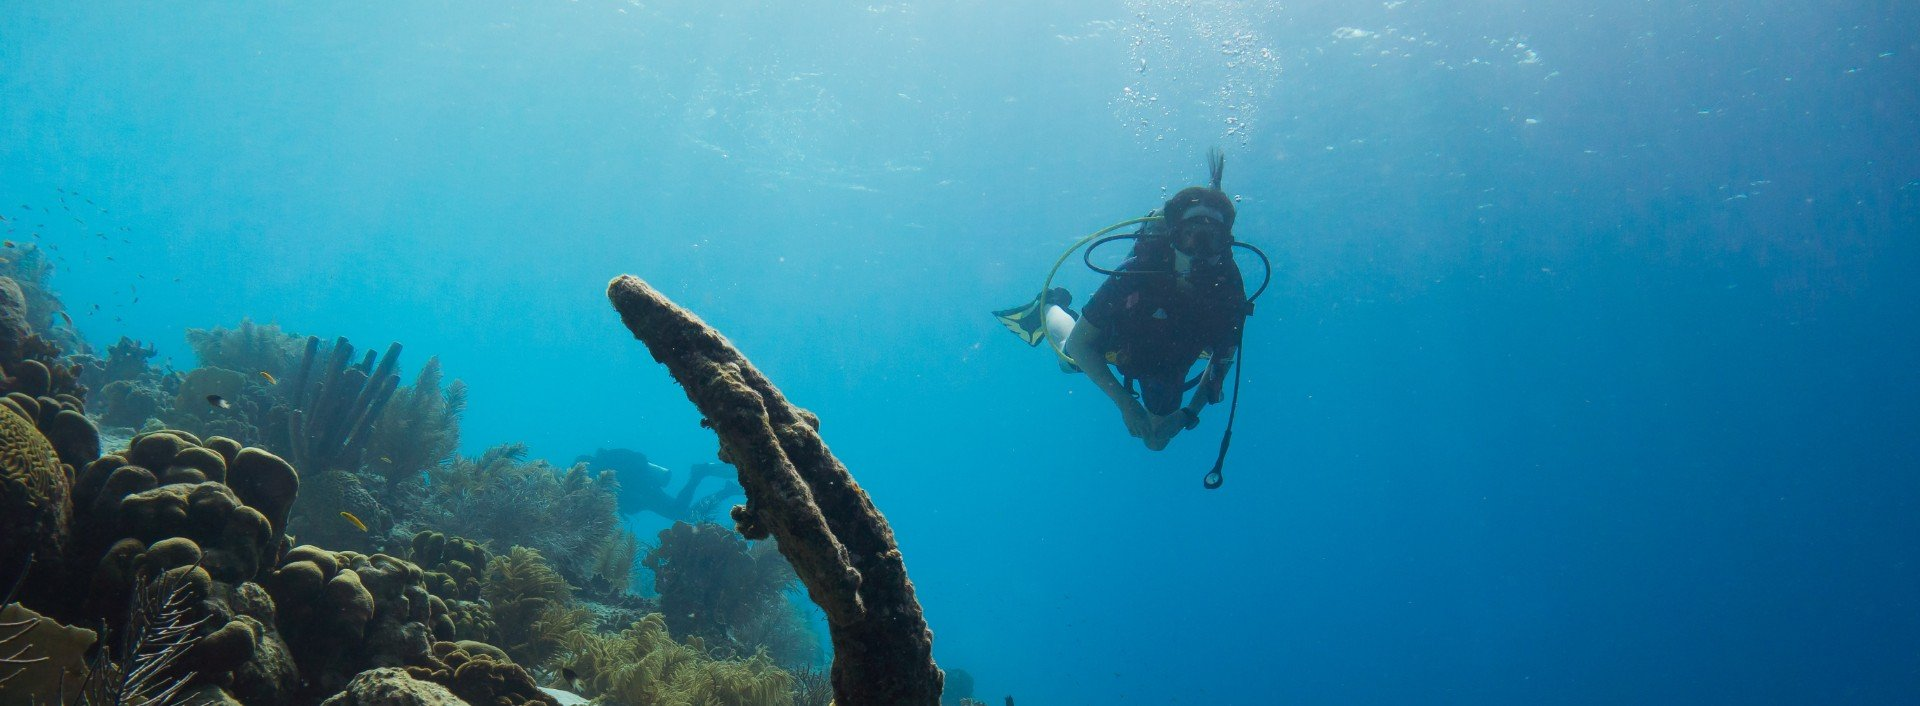 Words that are actually acronyms: A person scuba dives in clear blue water and looks at a shipwreck.